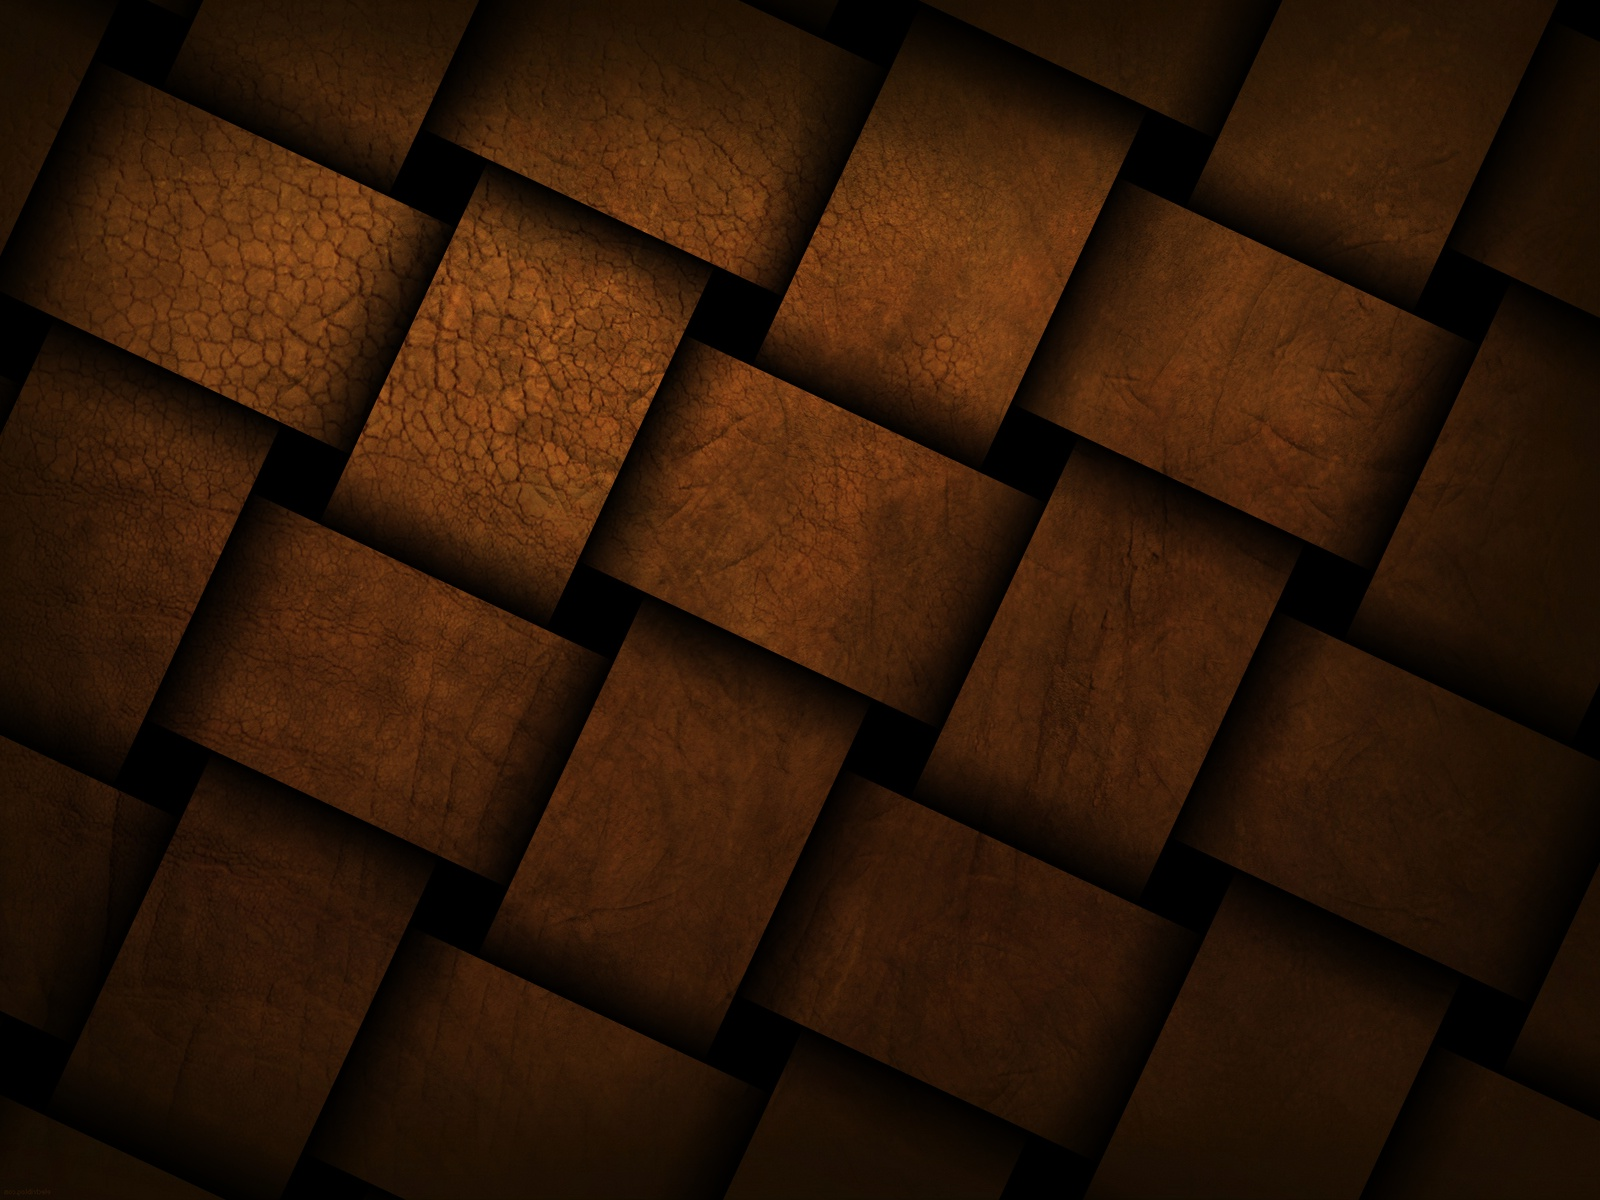 Plain wallpapers hd a16 hd desktop wallpapers 4k hd for 3d brown wallpaper